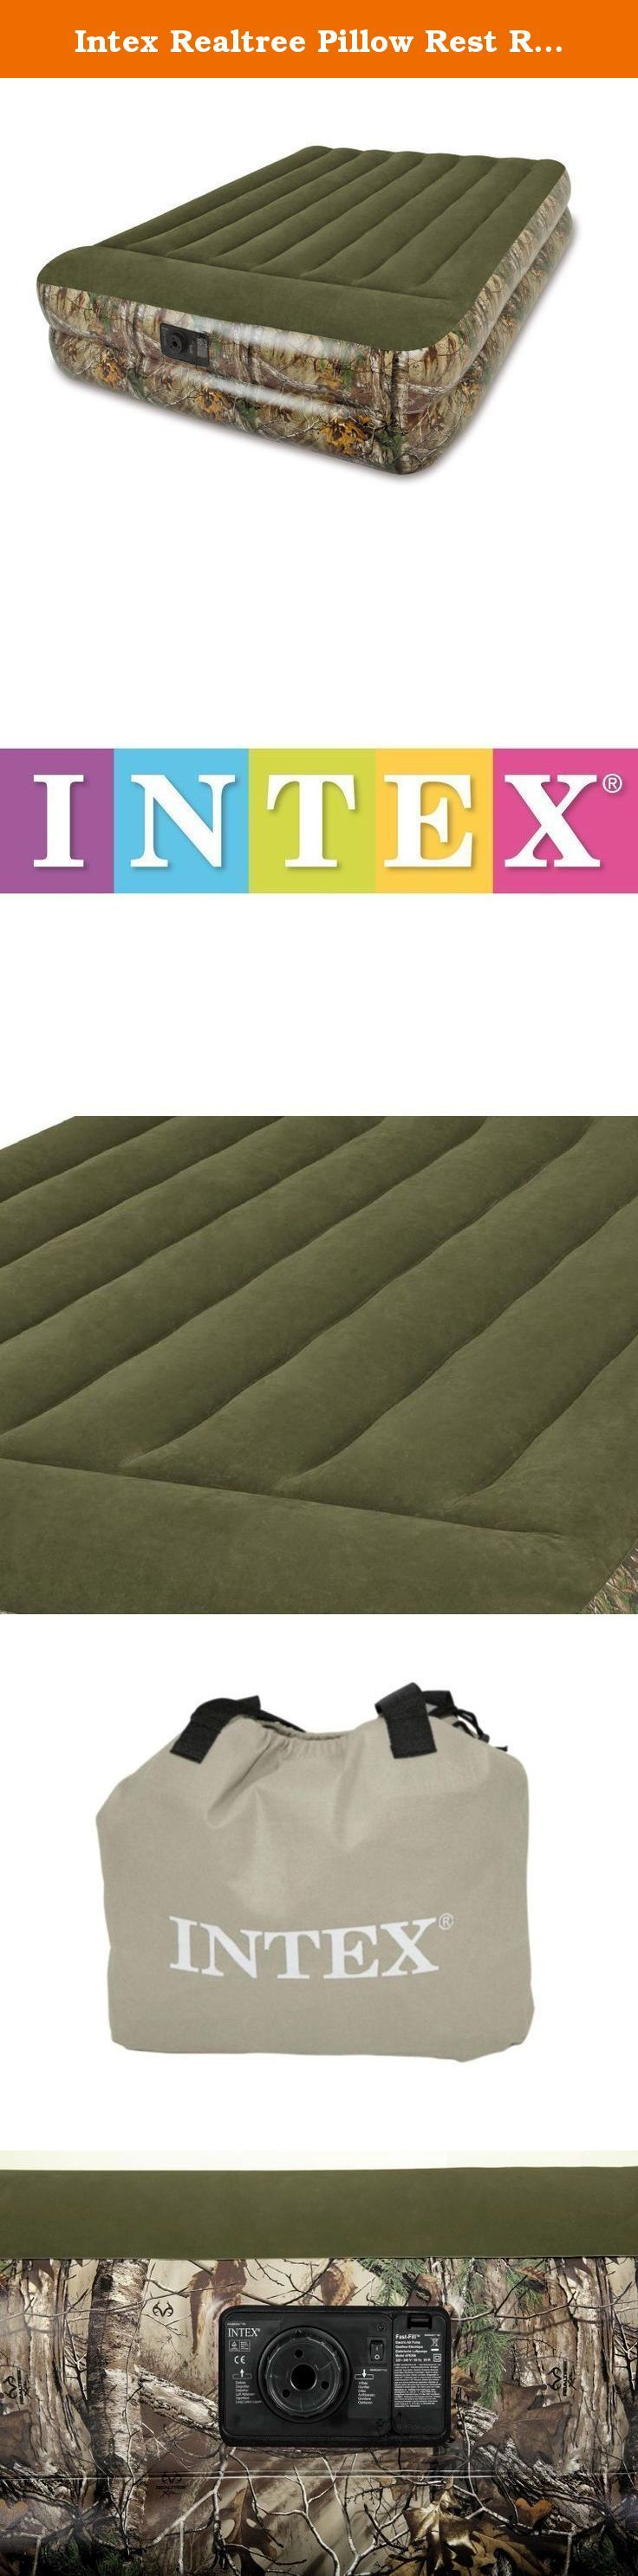 """Intex Realtree Pillow Rest Raised Airbed with Built-in Electric Pump - Queen. The Realtree Outdoors Raised Bed provides all of the great benefits of a raised bed and a build-in pump. This bed is perfect for guests who love the rugged outdoors. Quality-tested waterproof flocked top with vinyl sides and bottom. Standard queen size length and width to fit sheets. 16.5"""" (42cm) High mattress with built-in pillow for bed-like comfort."""